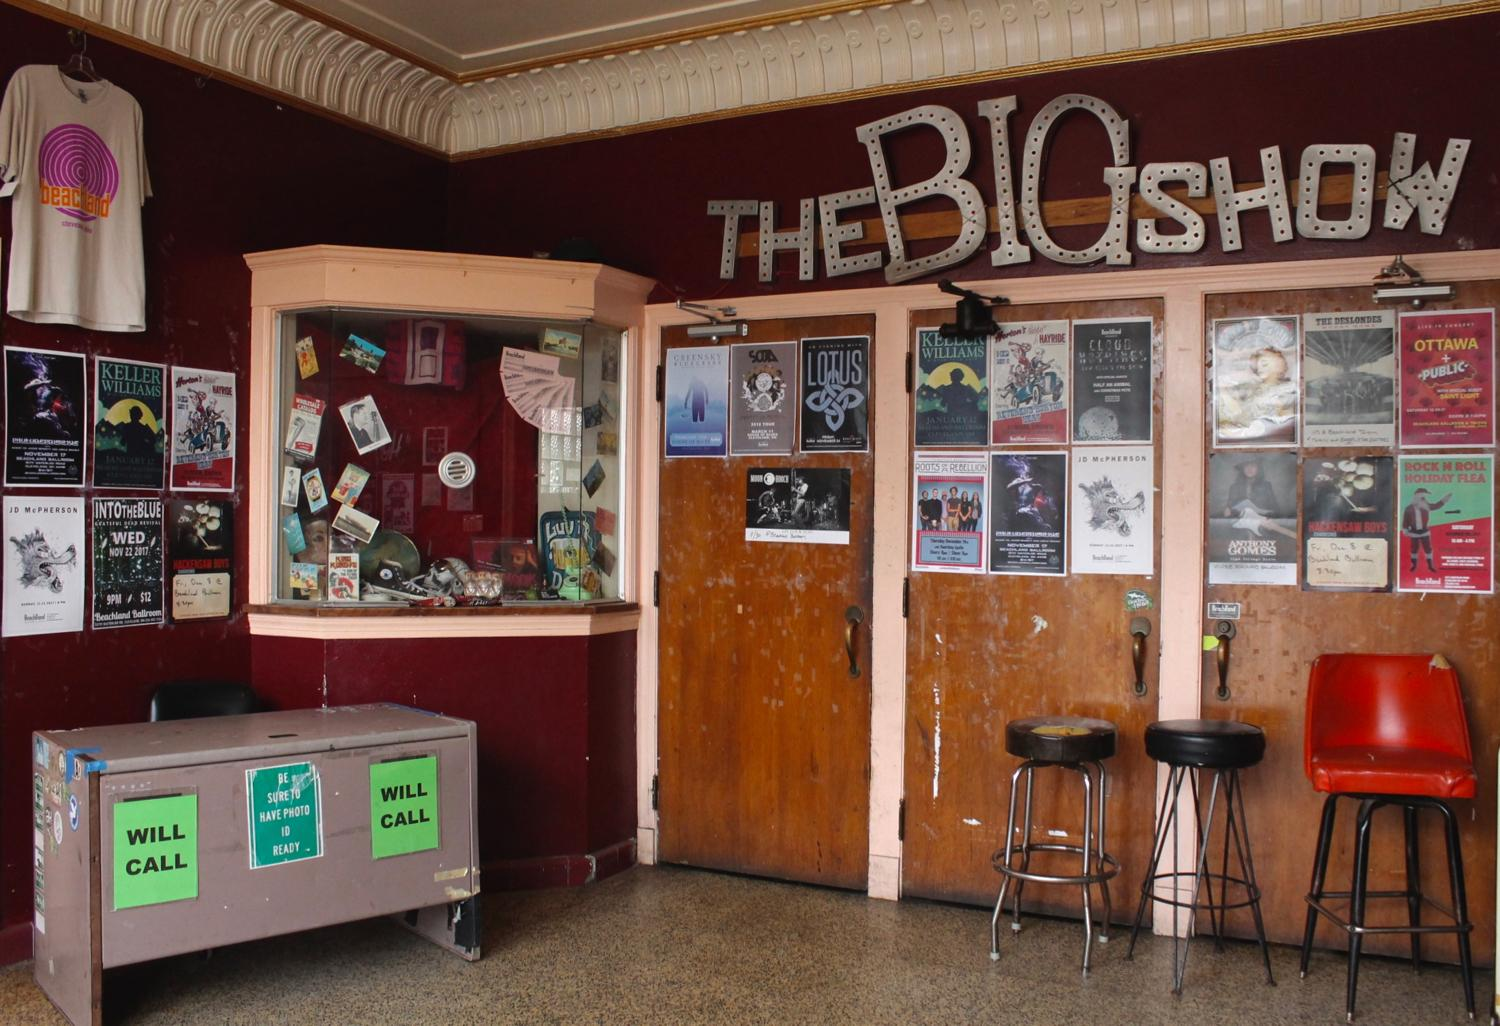 "The Beachland Ballroom and Tavern has it all: a music venue, record store, vintage and curiosities shop, and of course, a tavern. If you pop in on a Sunday, you'll even find a DJ there spinning their favorite vinyl for their ""Rockin' Brunch."" They are located in Cleveland's Waterloo Arts and Entertainment District in the North Shore Collinwood neighborhood of Cleveland. ADDRESS: 15711 Waterloo Rd., Cleveland, OH 44110 / Image: Rose Brewington // Published: 11.22.17"